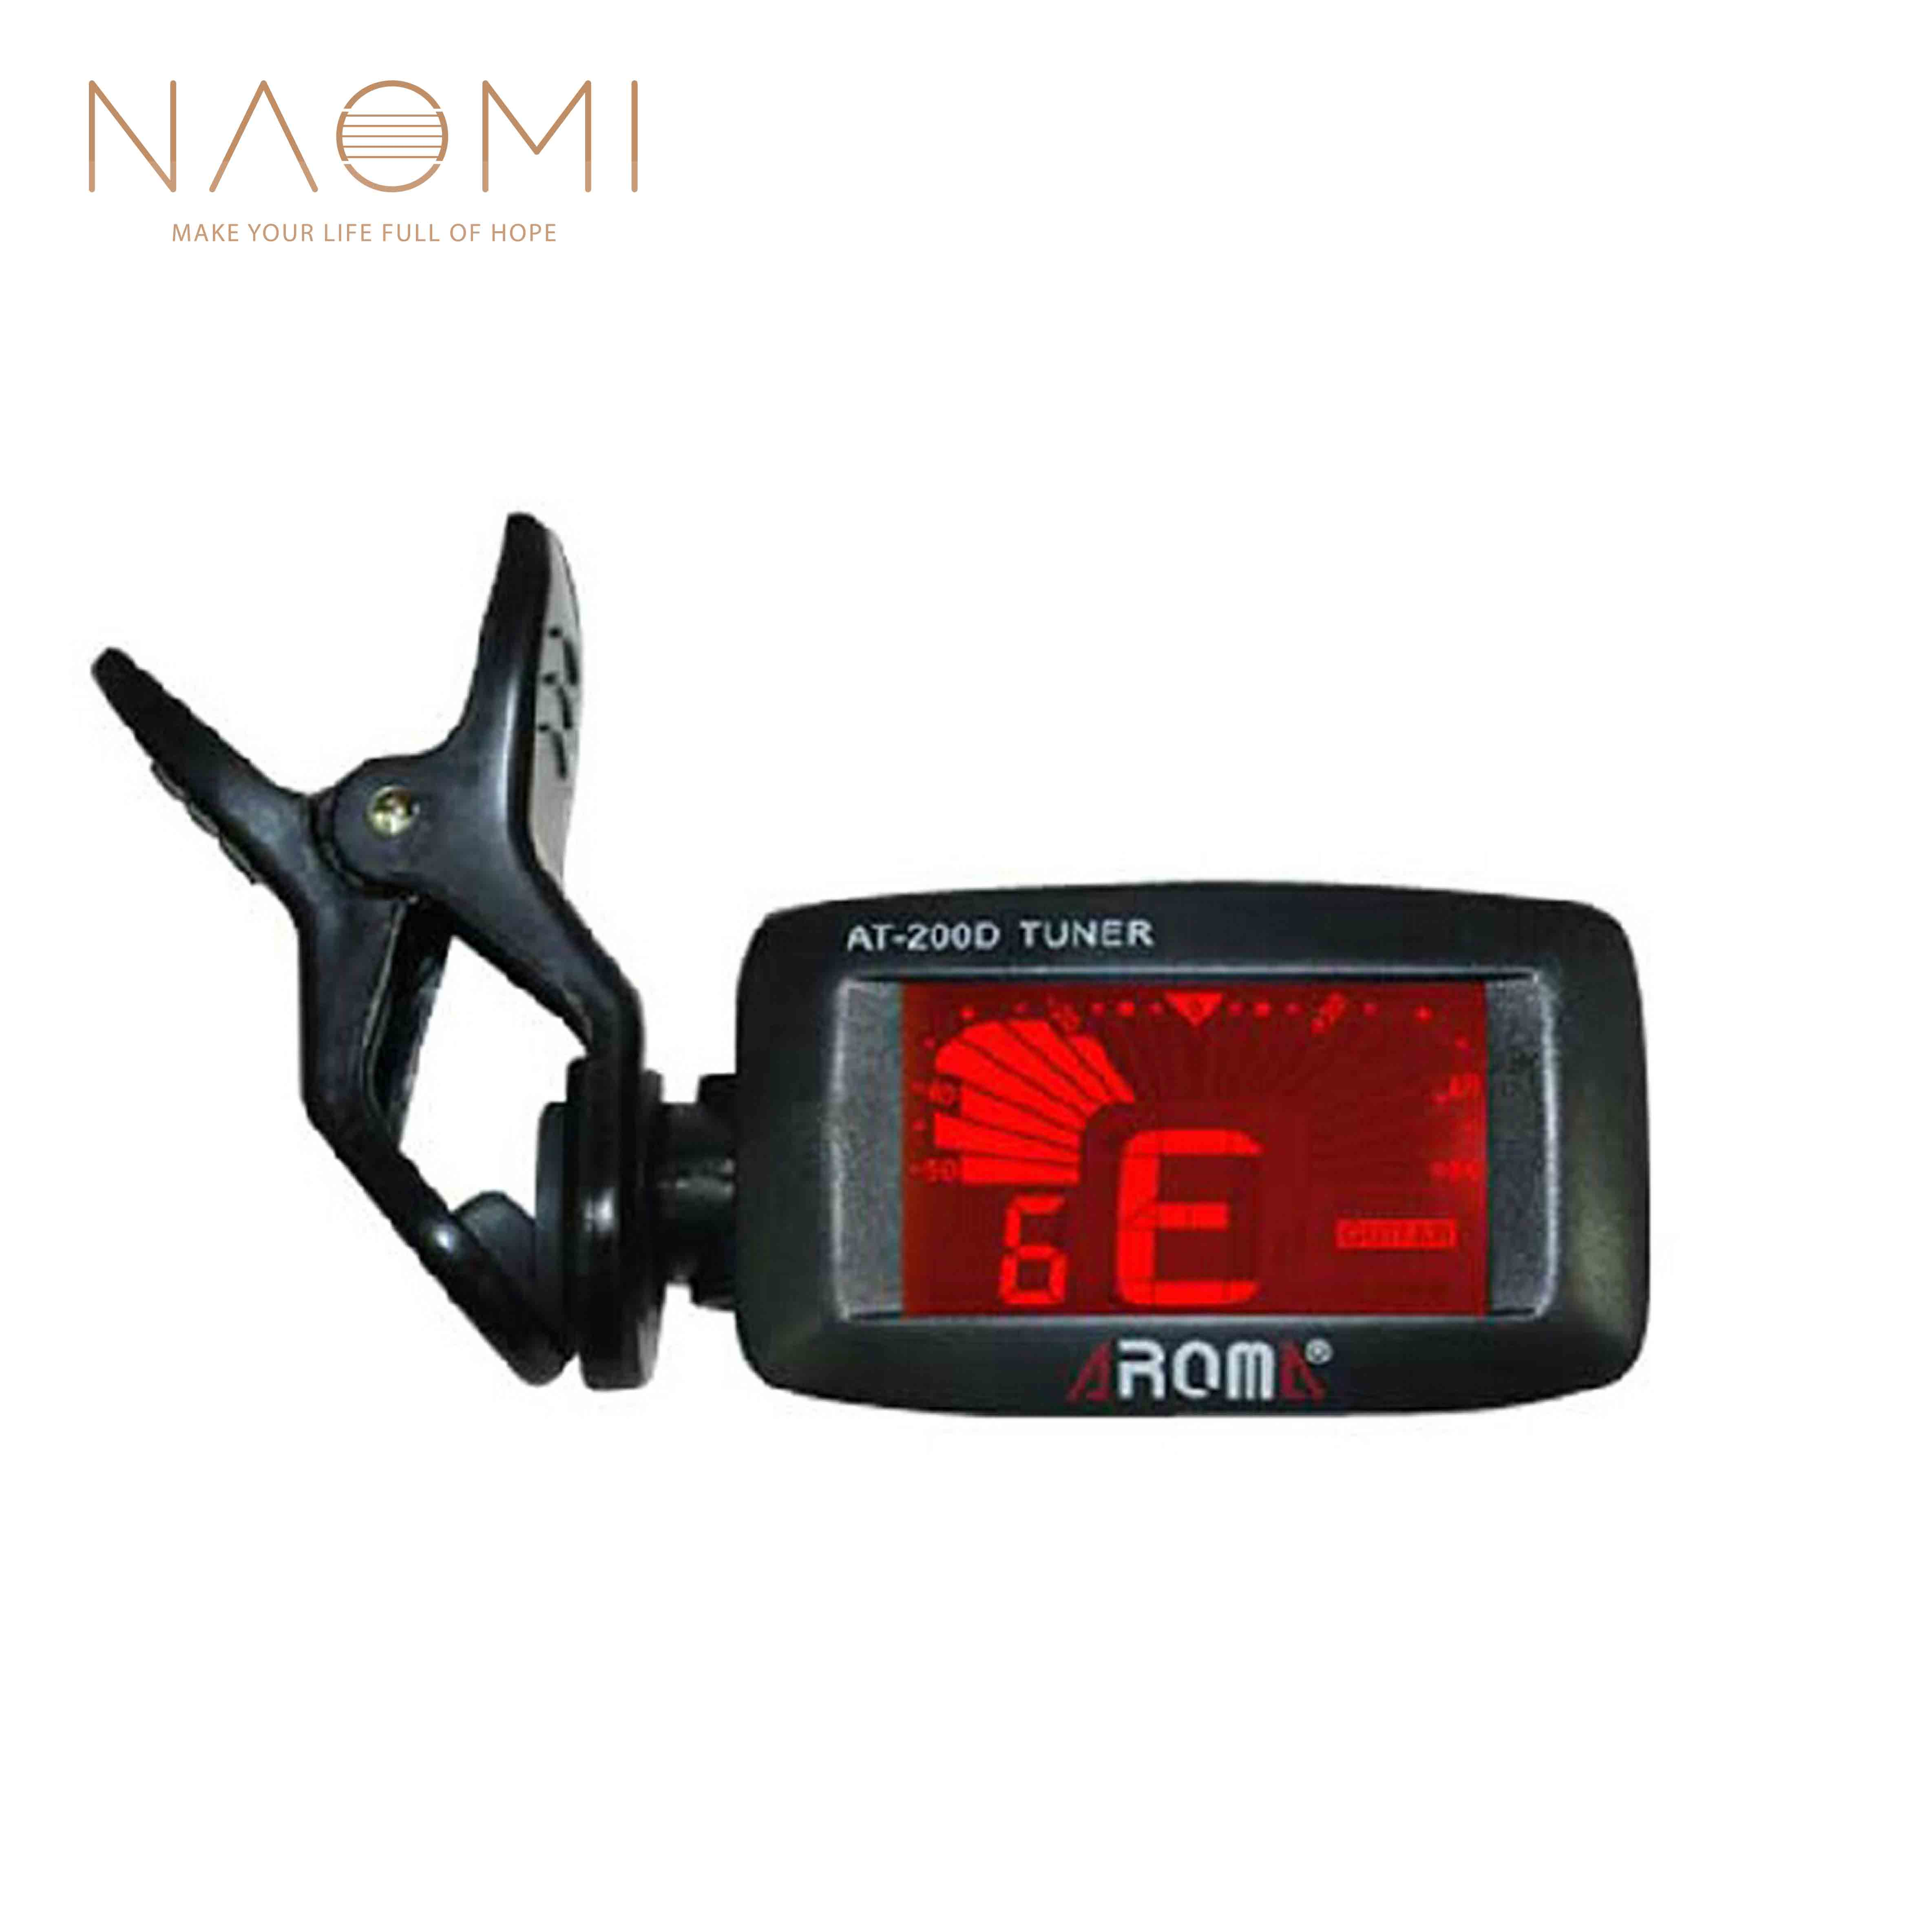 naomi aroma at 200d guitar tuner digital guitar tuner clip on chromatic tuner for acoustic. Black Bedroom Furniture Sets. Home Design Ideas